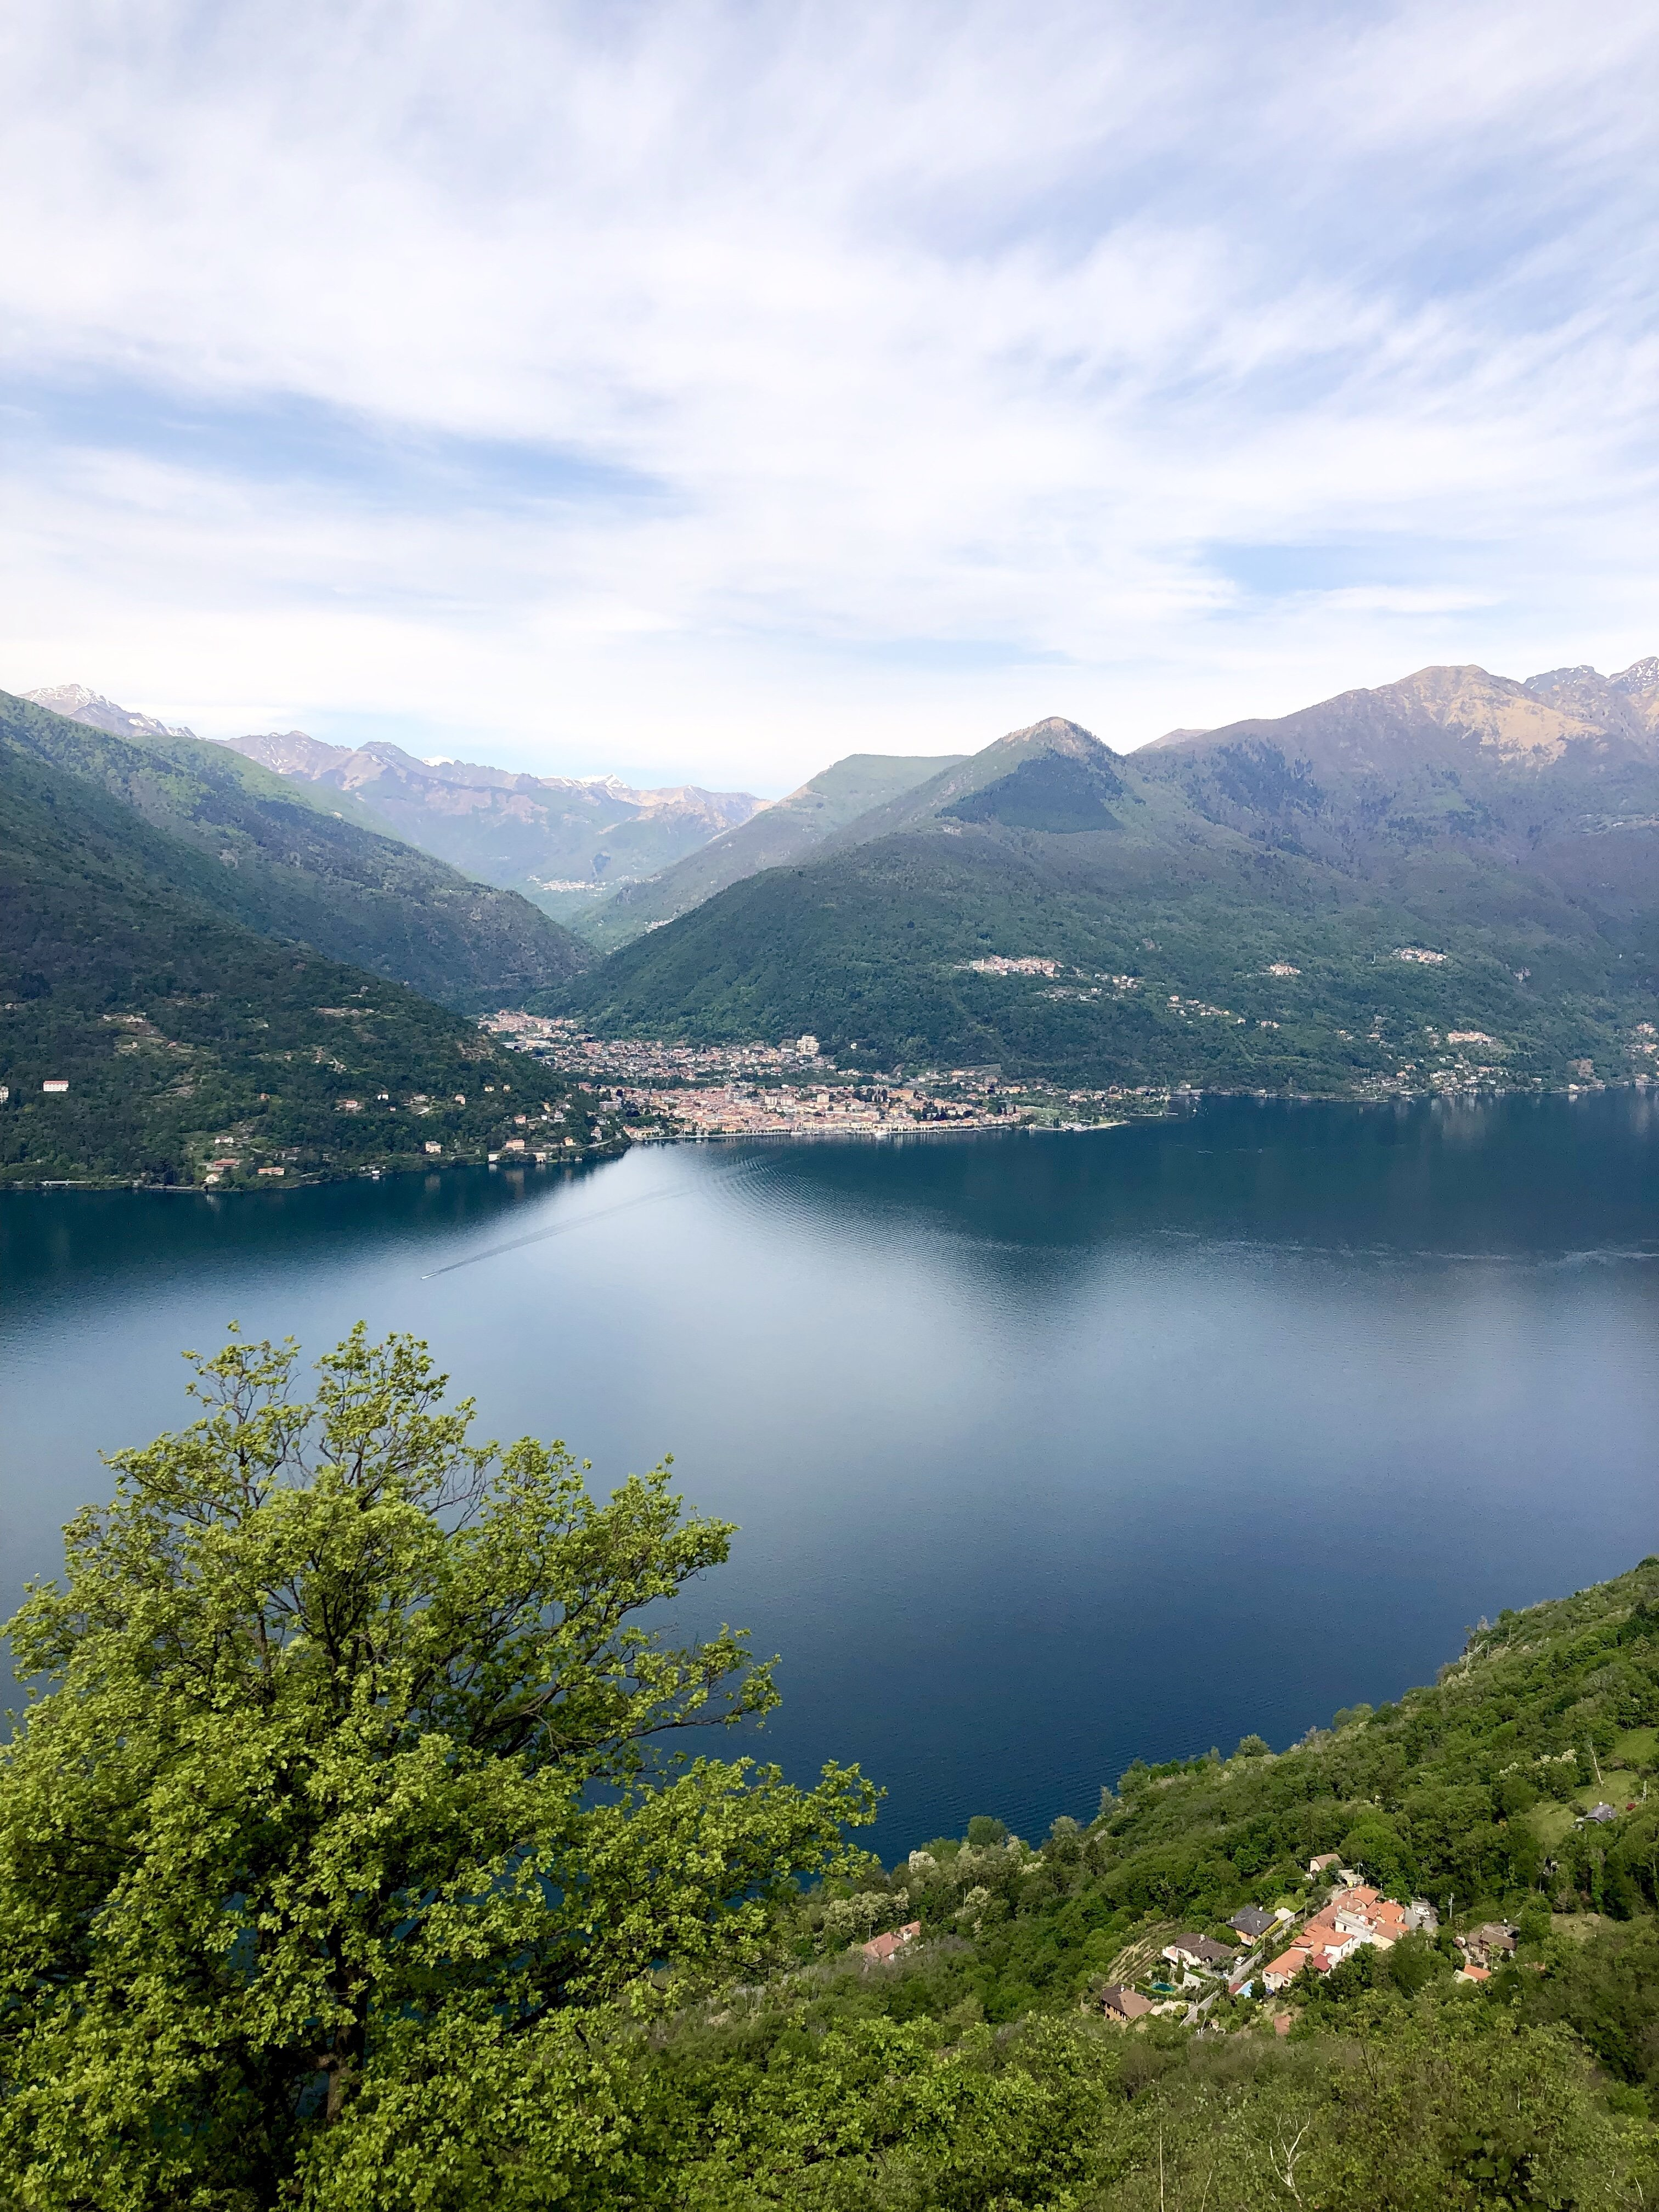 Visit Maccagno in Lake Maggiore for stunning views